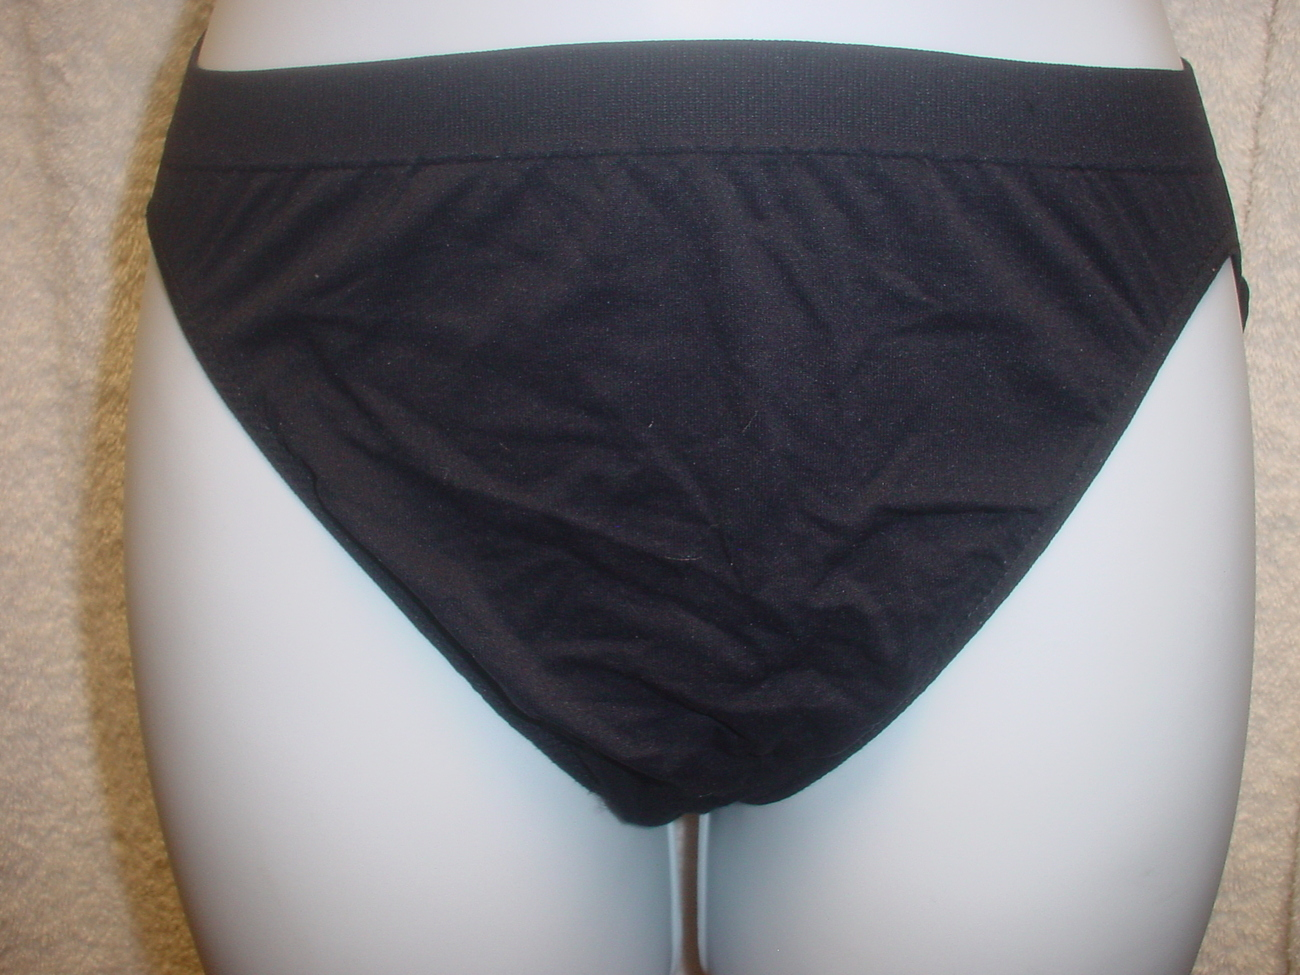 Jockey Seamfree Panty 5/Small Black SP-Slightly Imperfect Lot of 2 NWOT